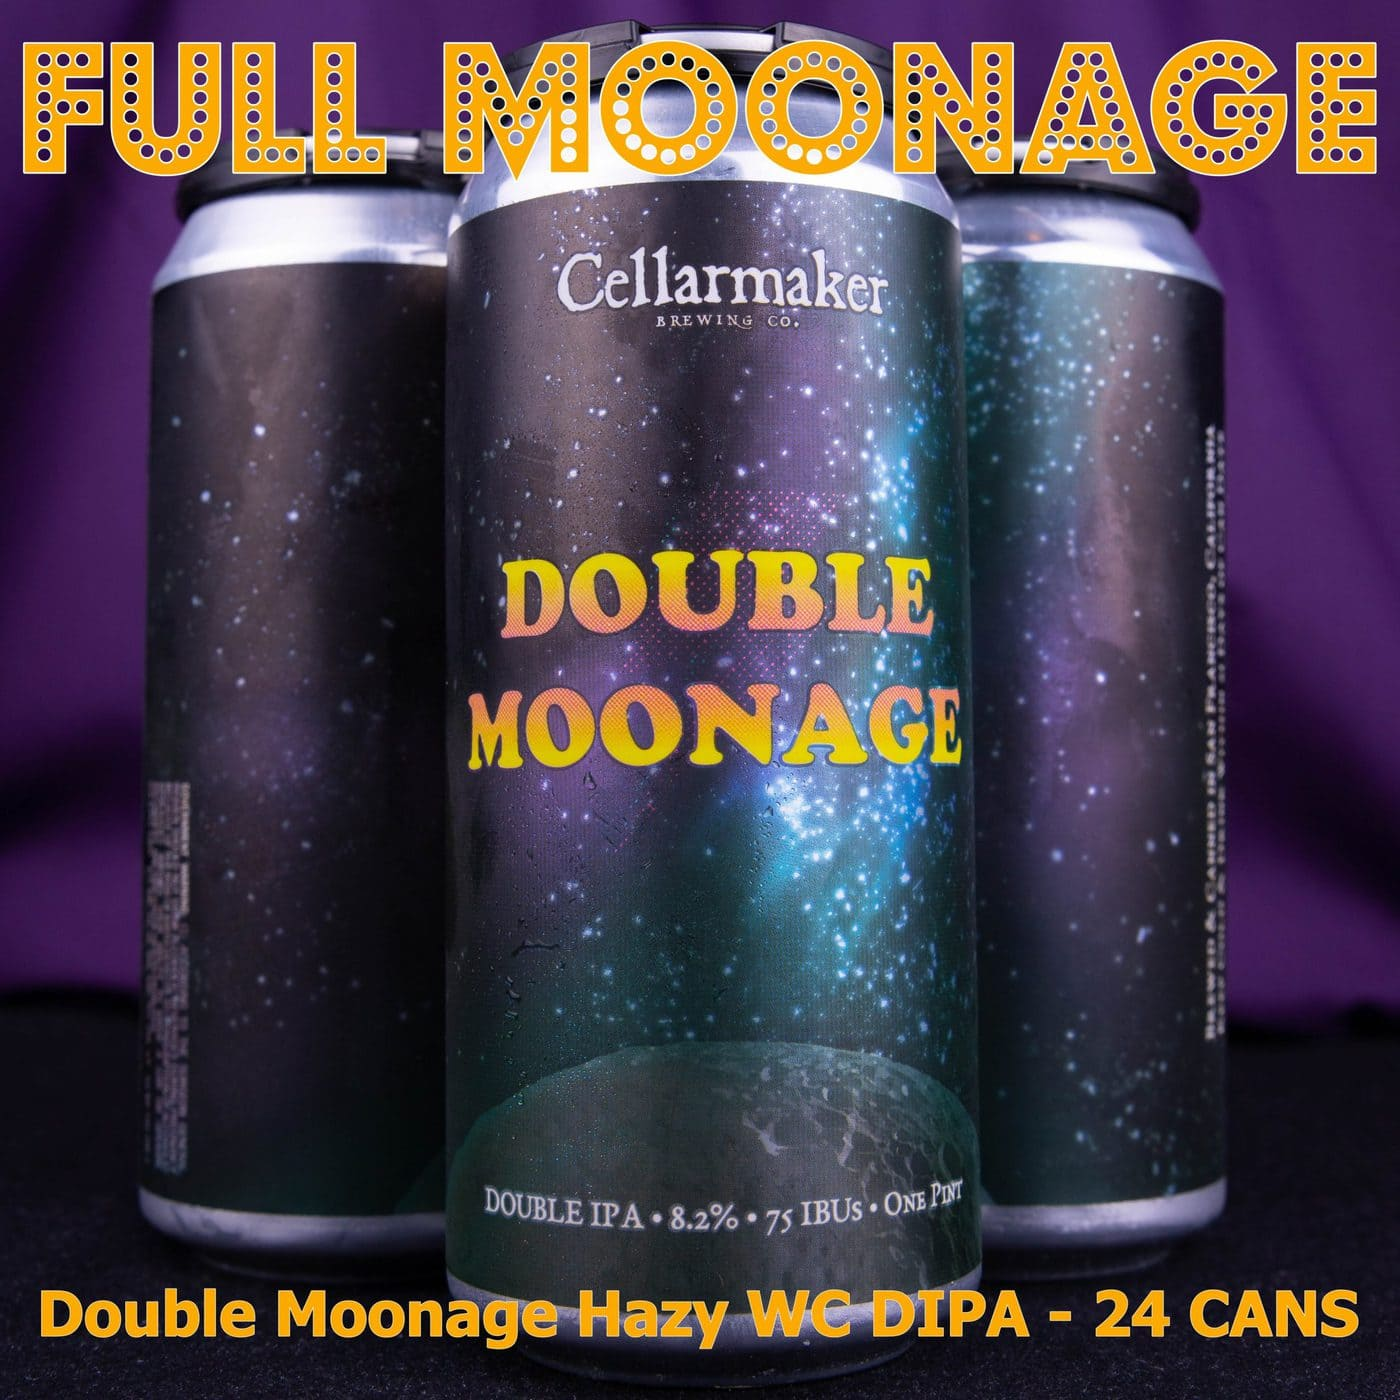 FULL CASE 24 CANS Double Moonage DIPA … SHIPPING Out On TUESDAY 1/12 For NEXT DAY Delivery*